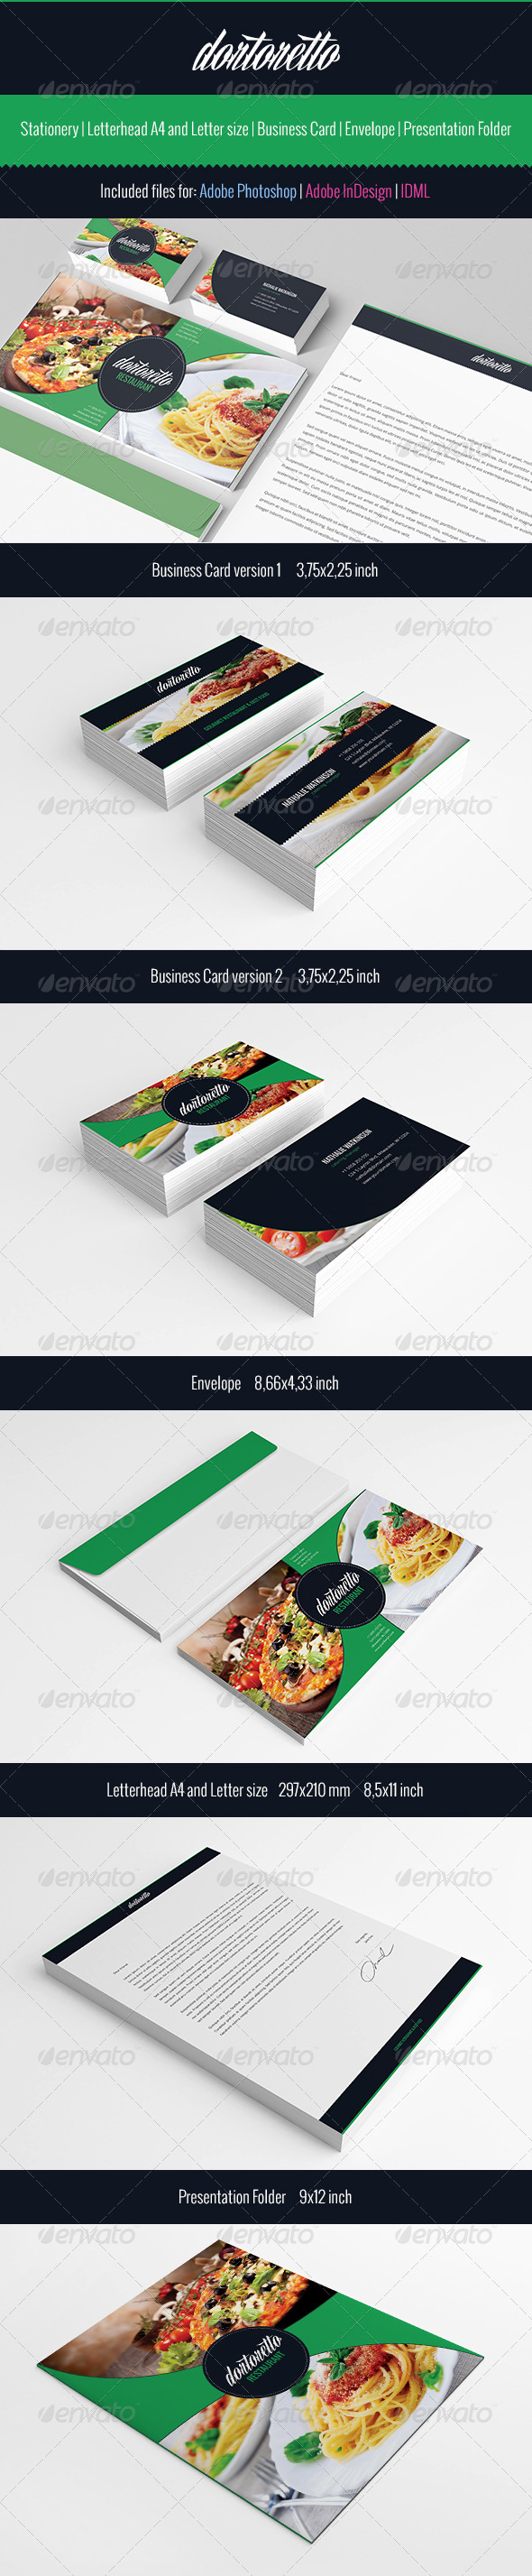 Dortoretto Stationery  - Stationery Print Templates